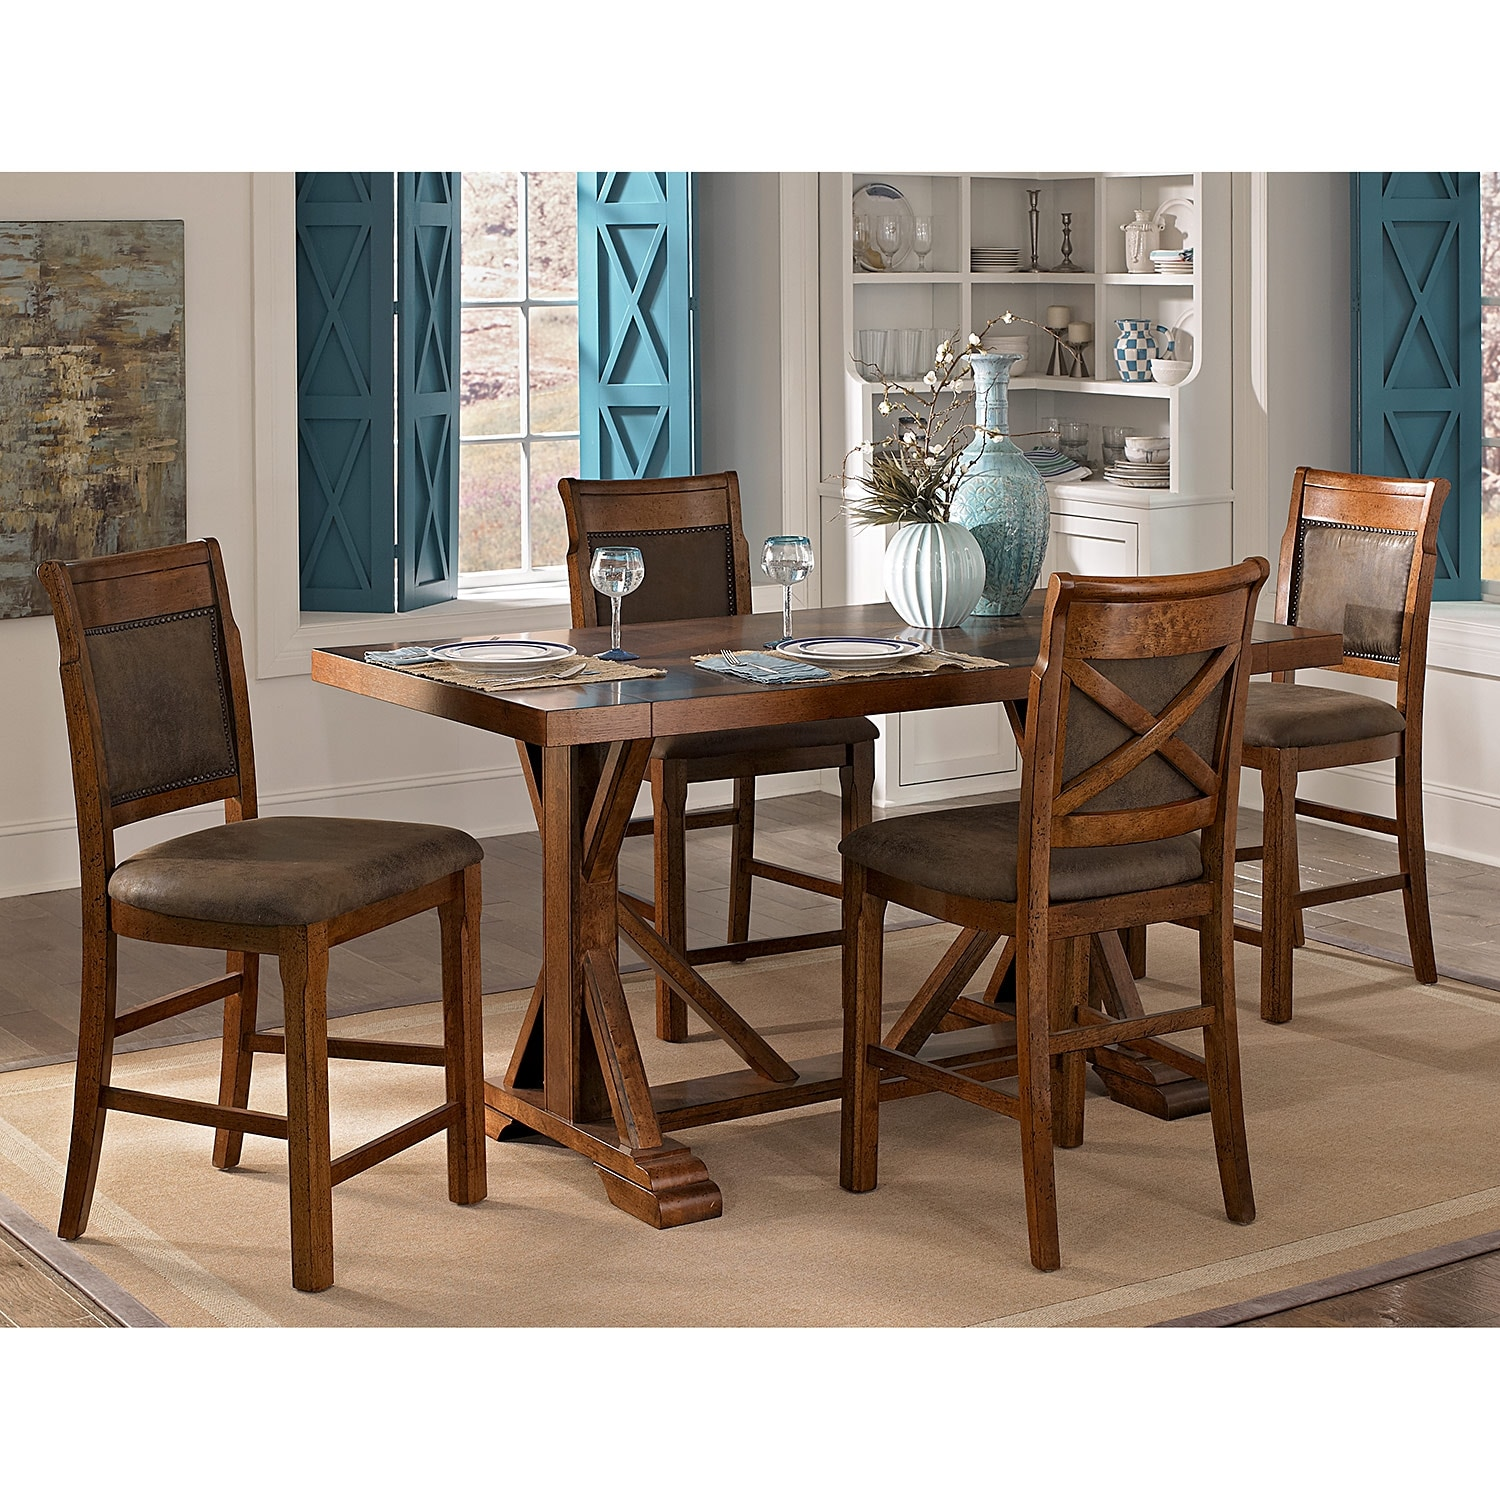 Cheap Dining Room Sets Austin at Home Dining Sets